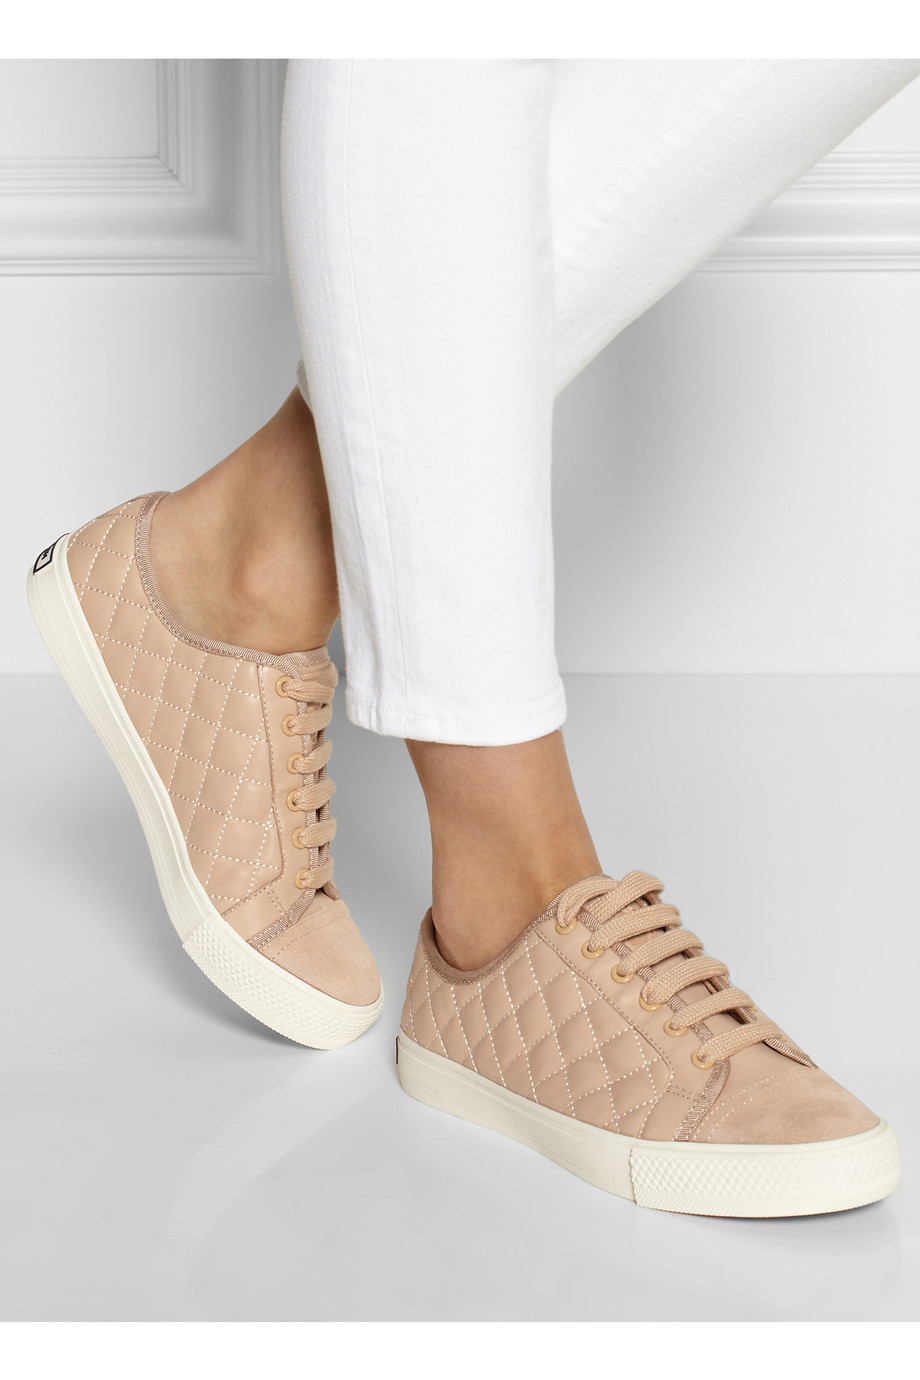 tory burch caspe quilted leather sneakers in pink lyst